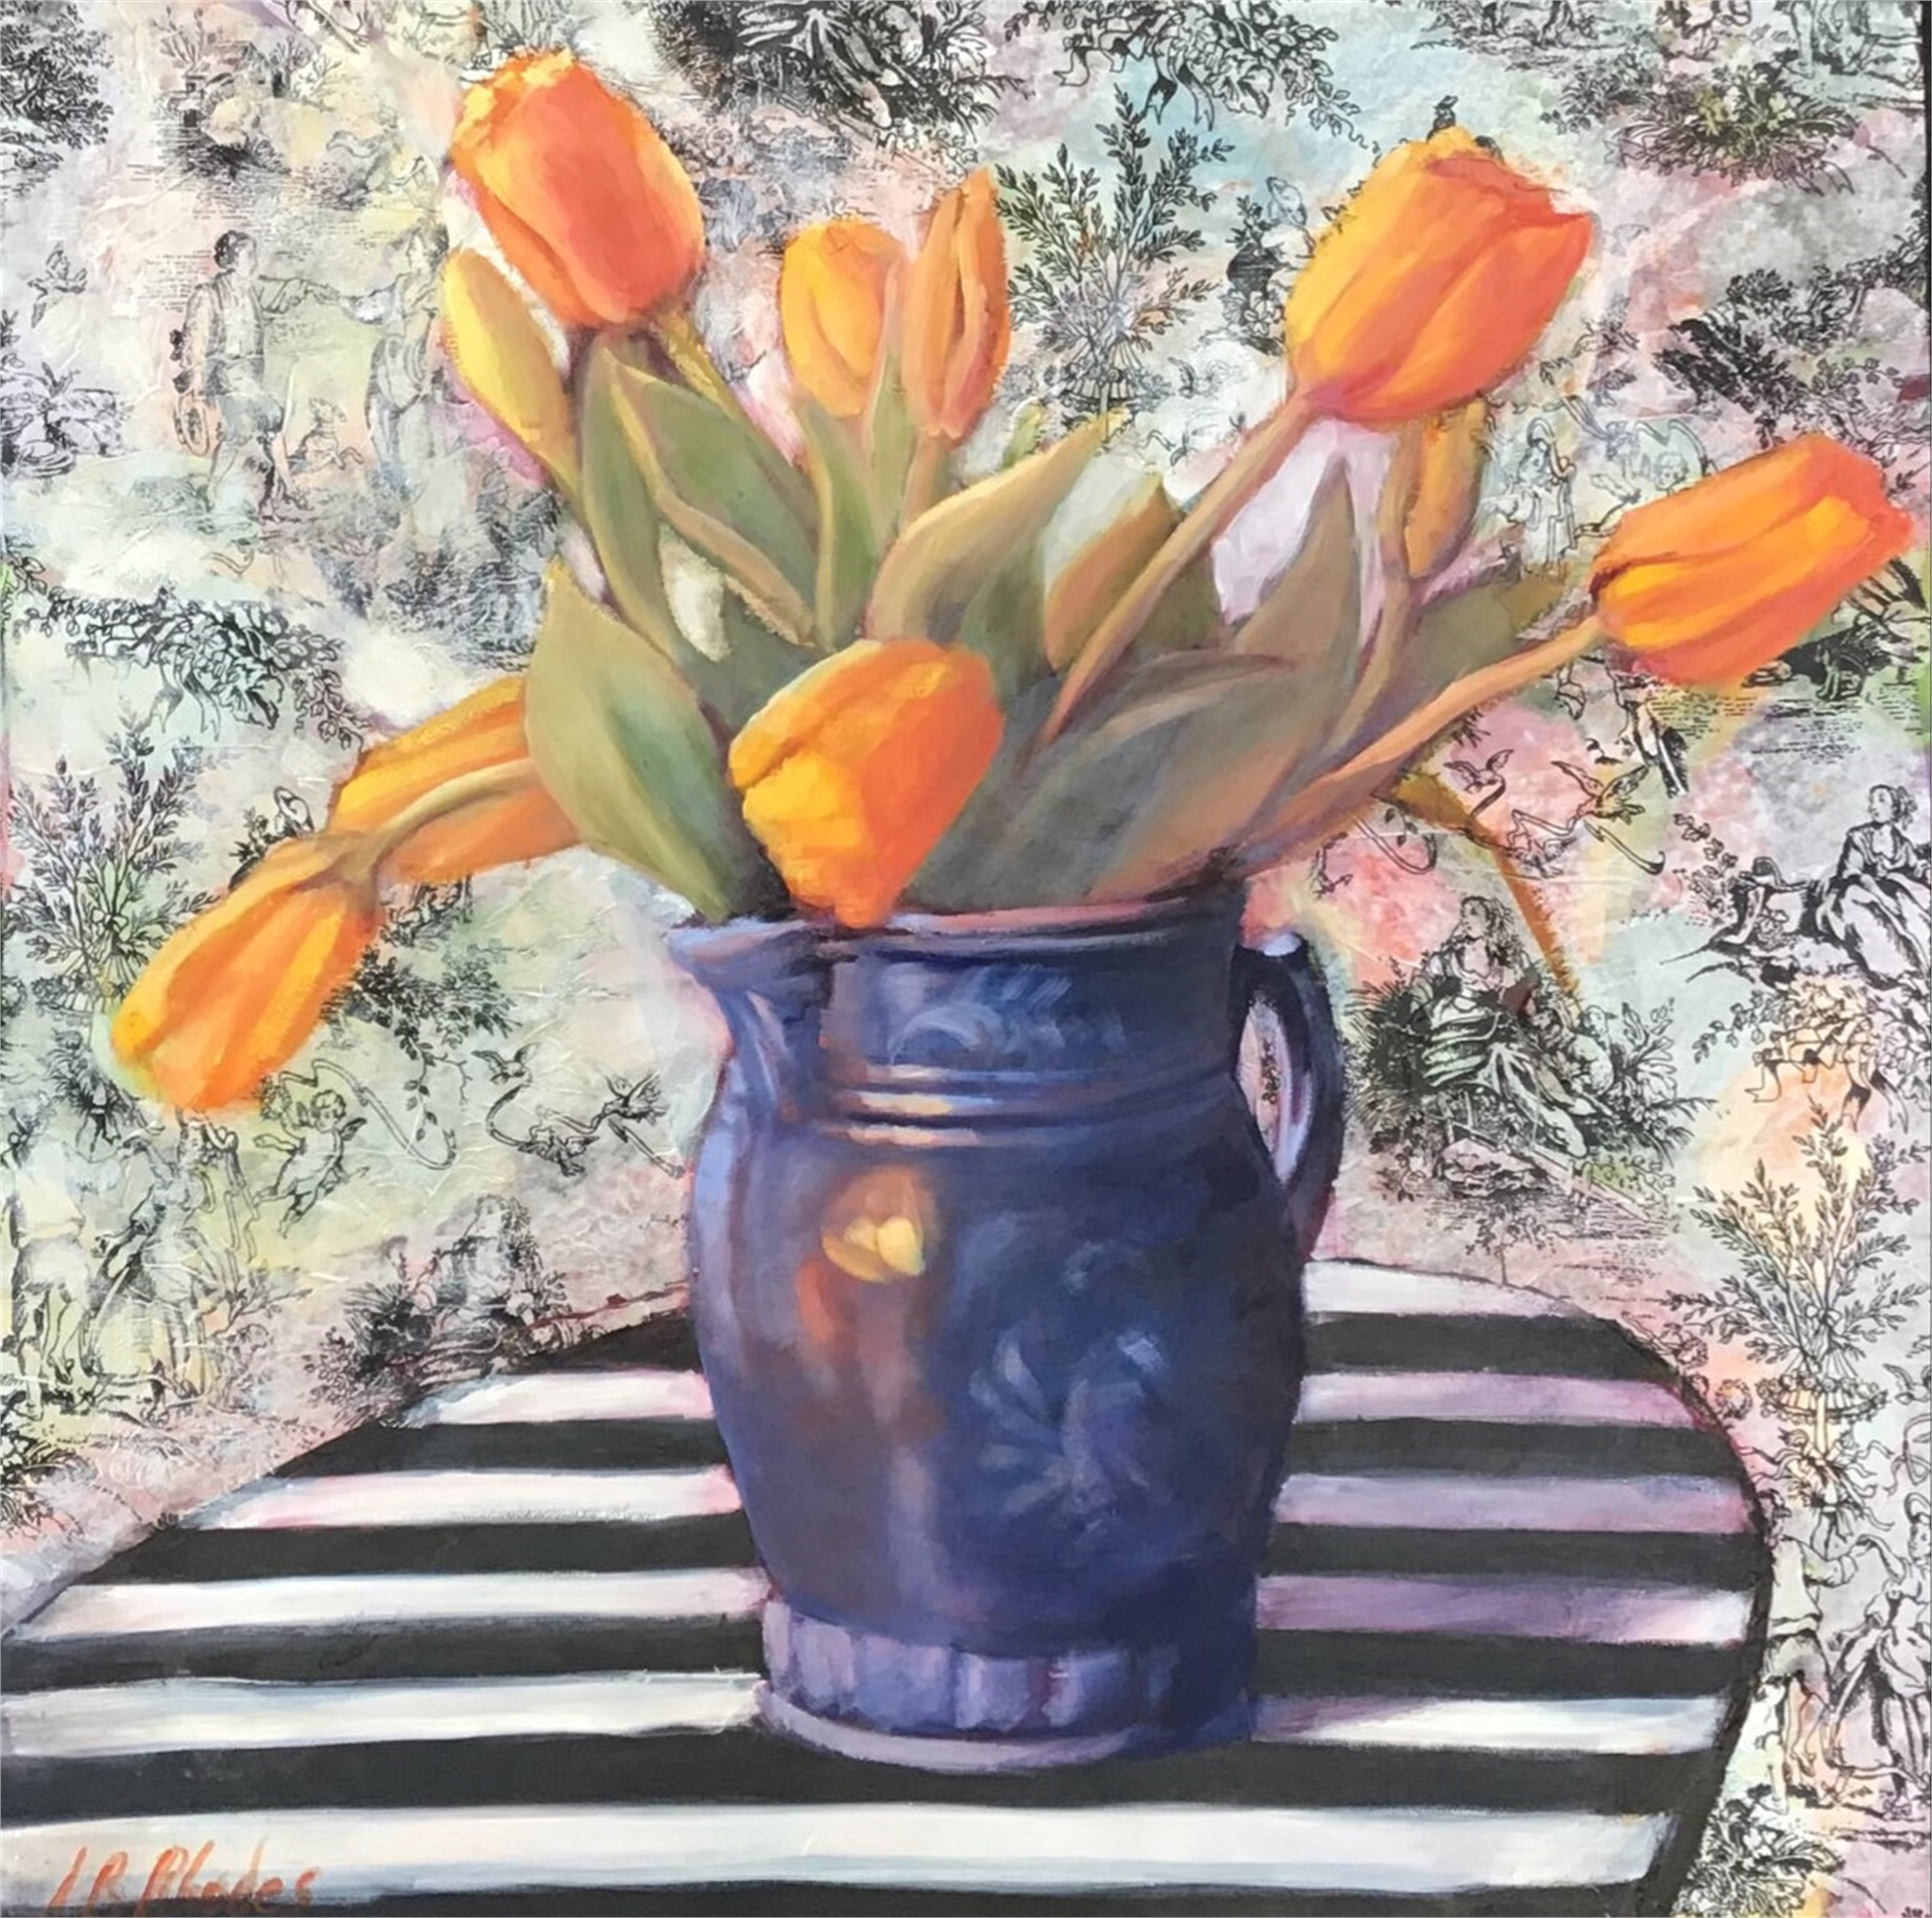 Torn Fabric Tulips by Ann B. Rhodes